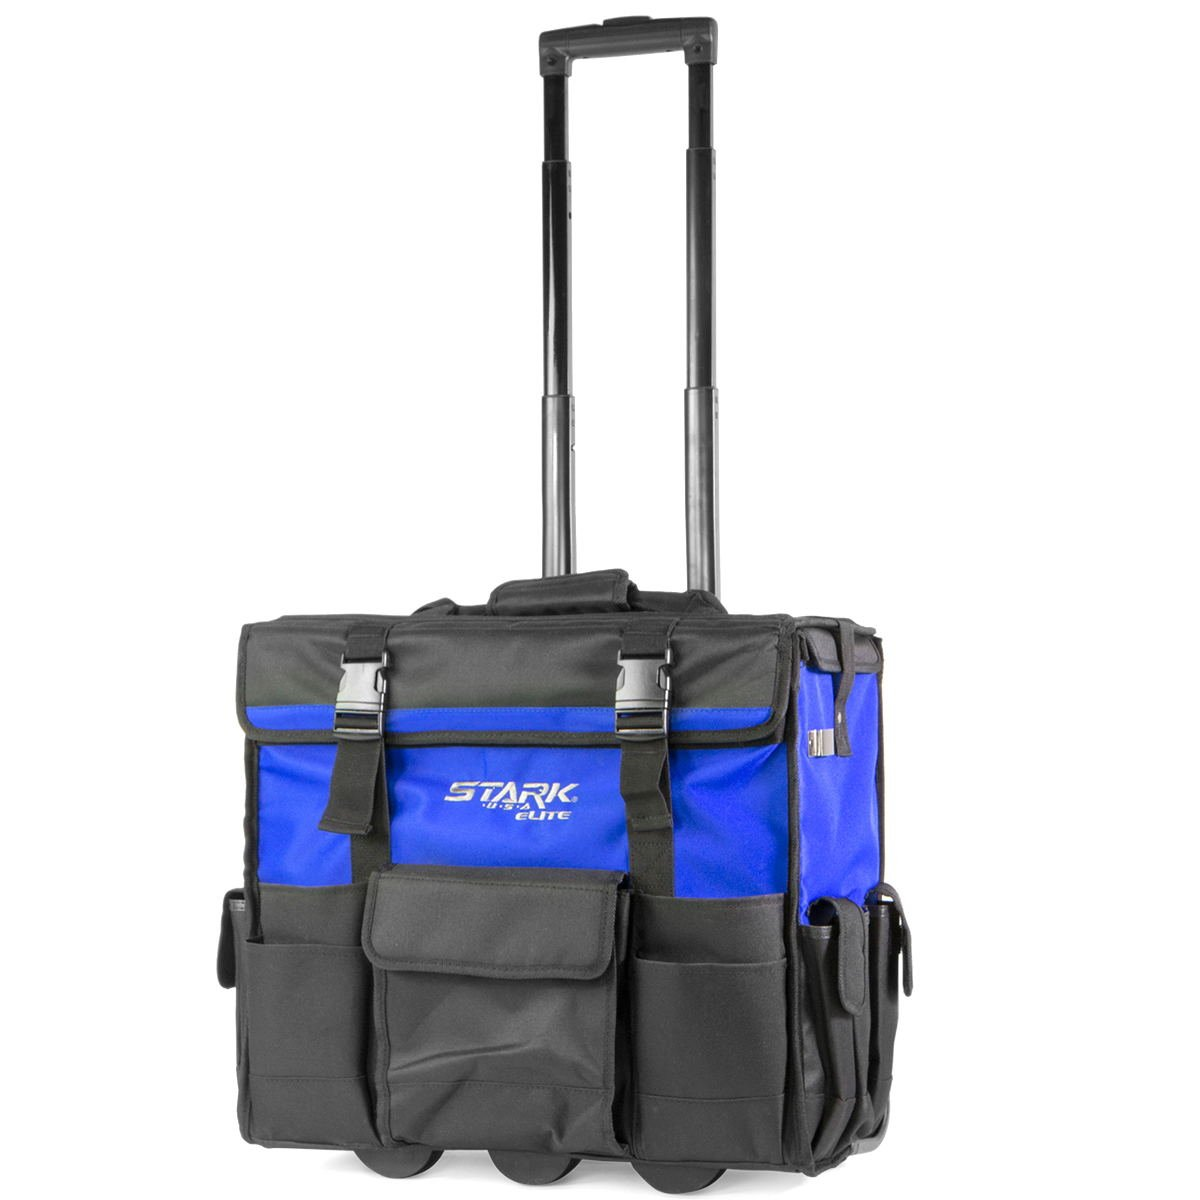 Stark 20'' Rolling Wide Mouth Tool Bag w/ Divider, Blue